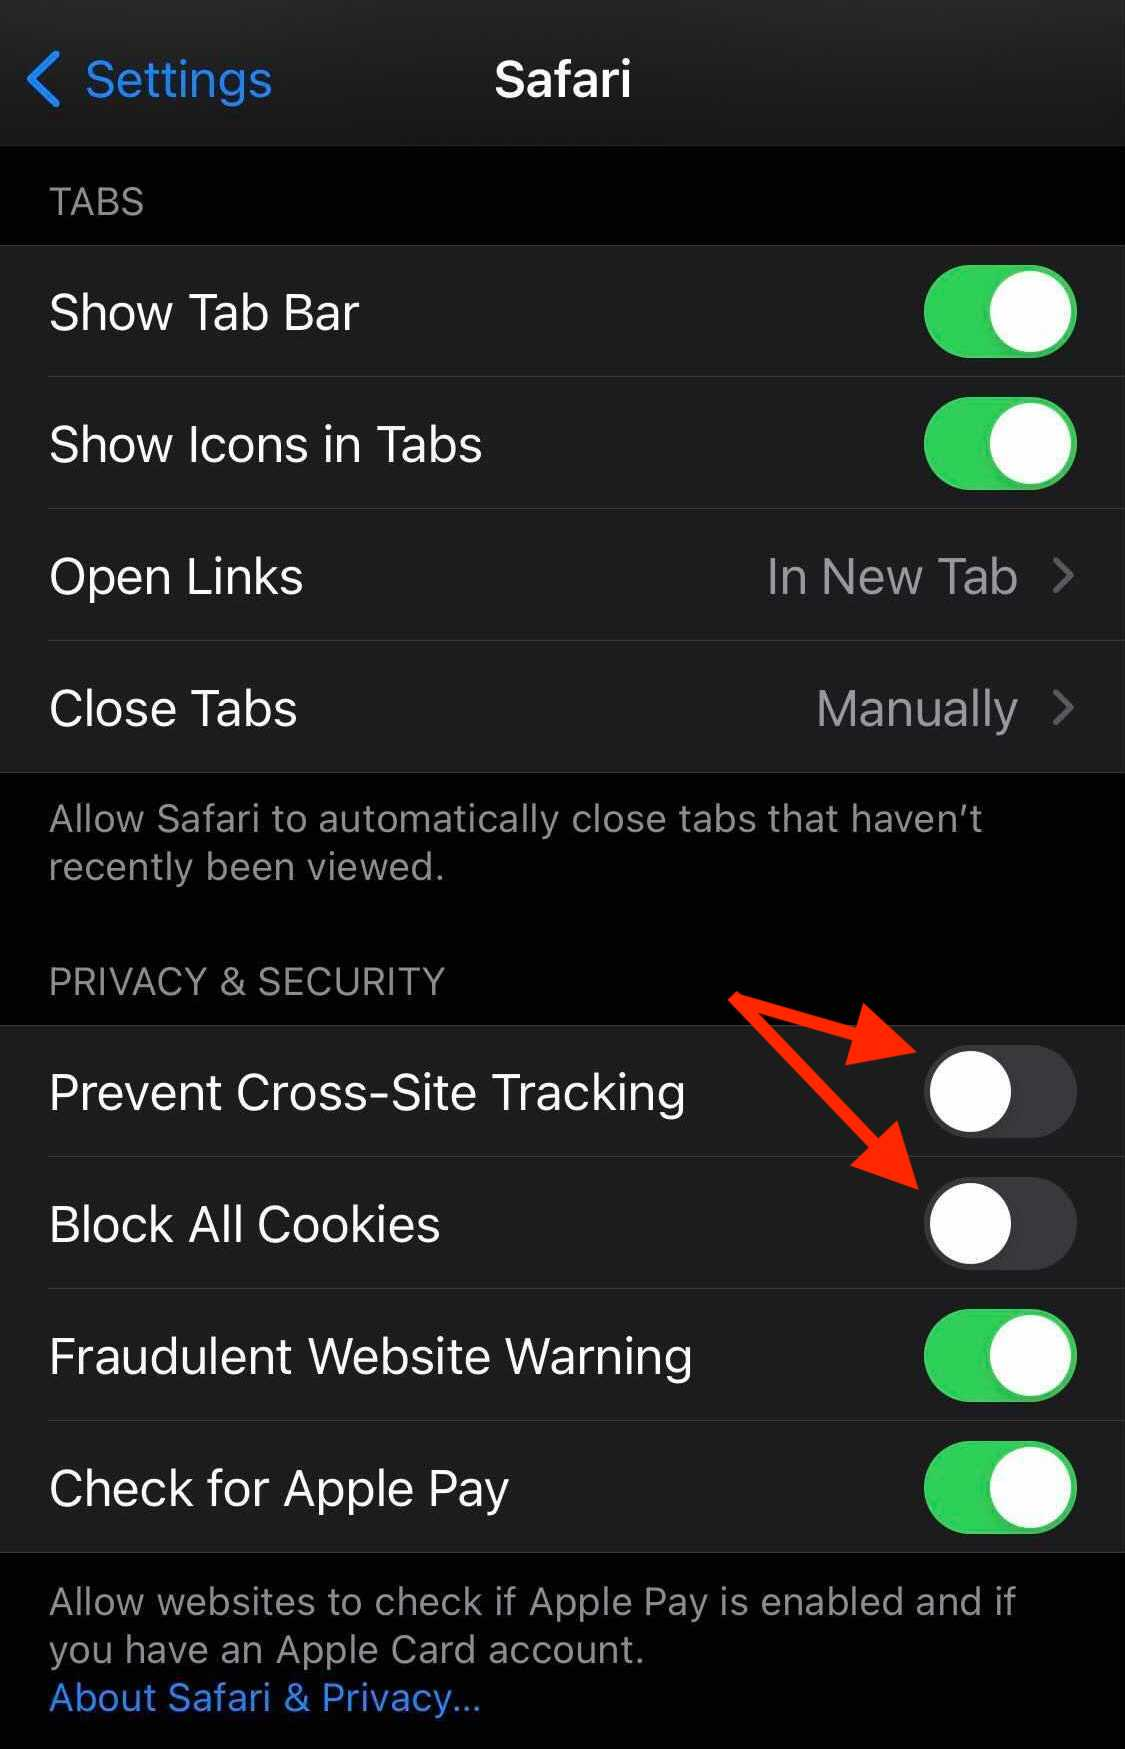 Safari Settings in iOS as described